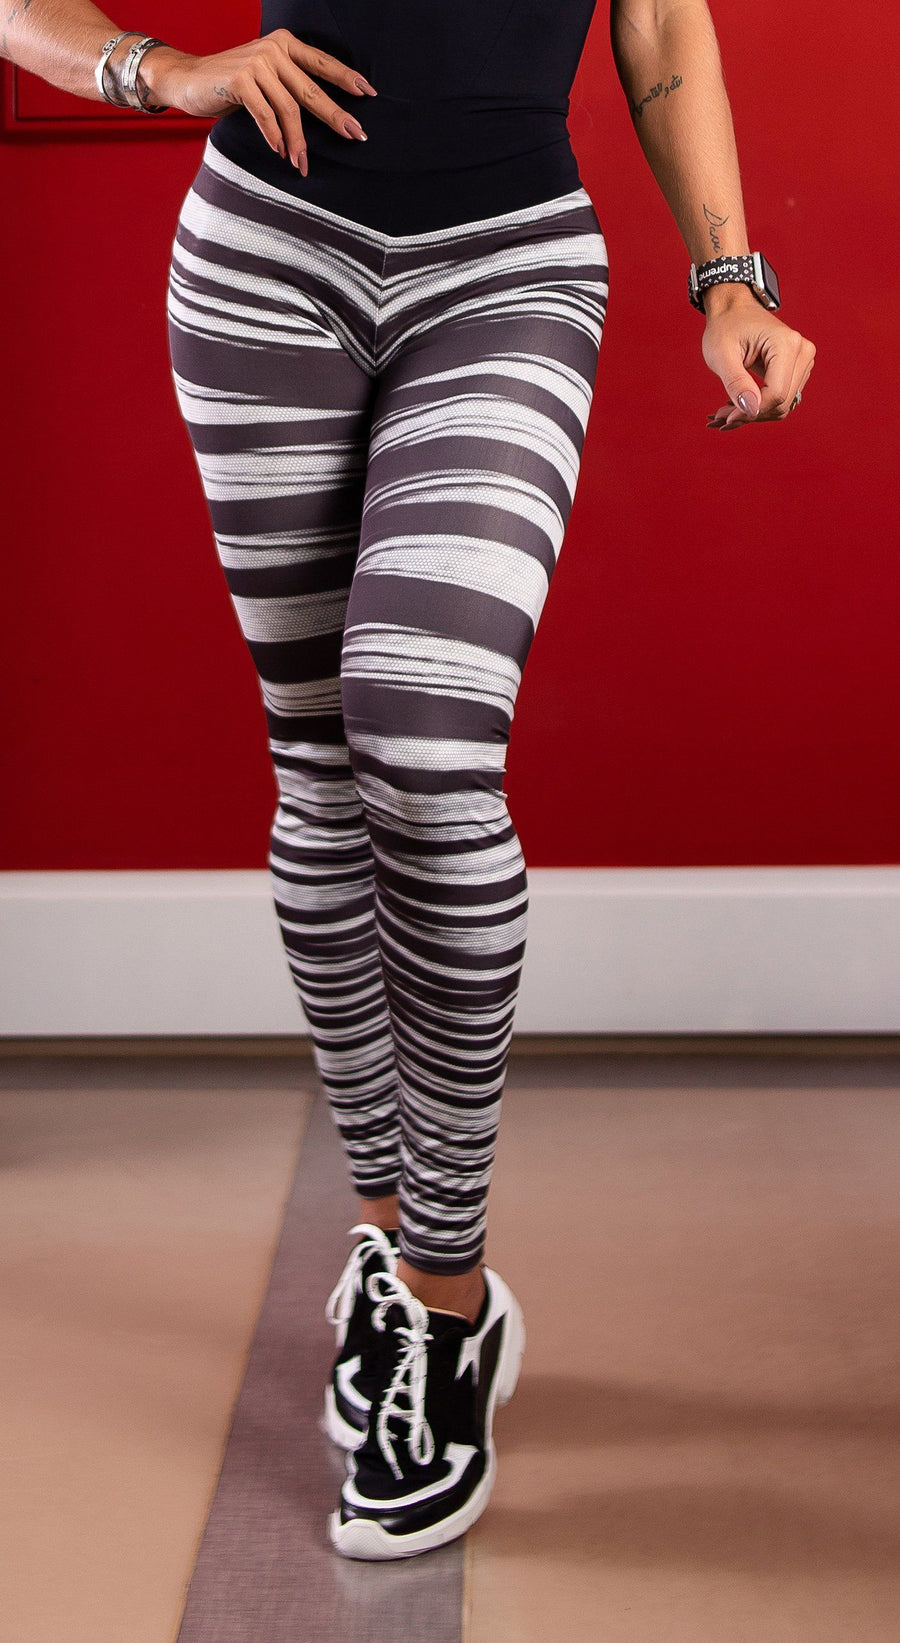 Brazilian Workout Legging - Scrunch Booty Up! 3D Crossline